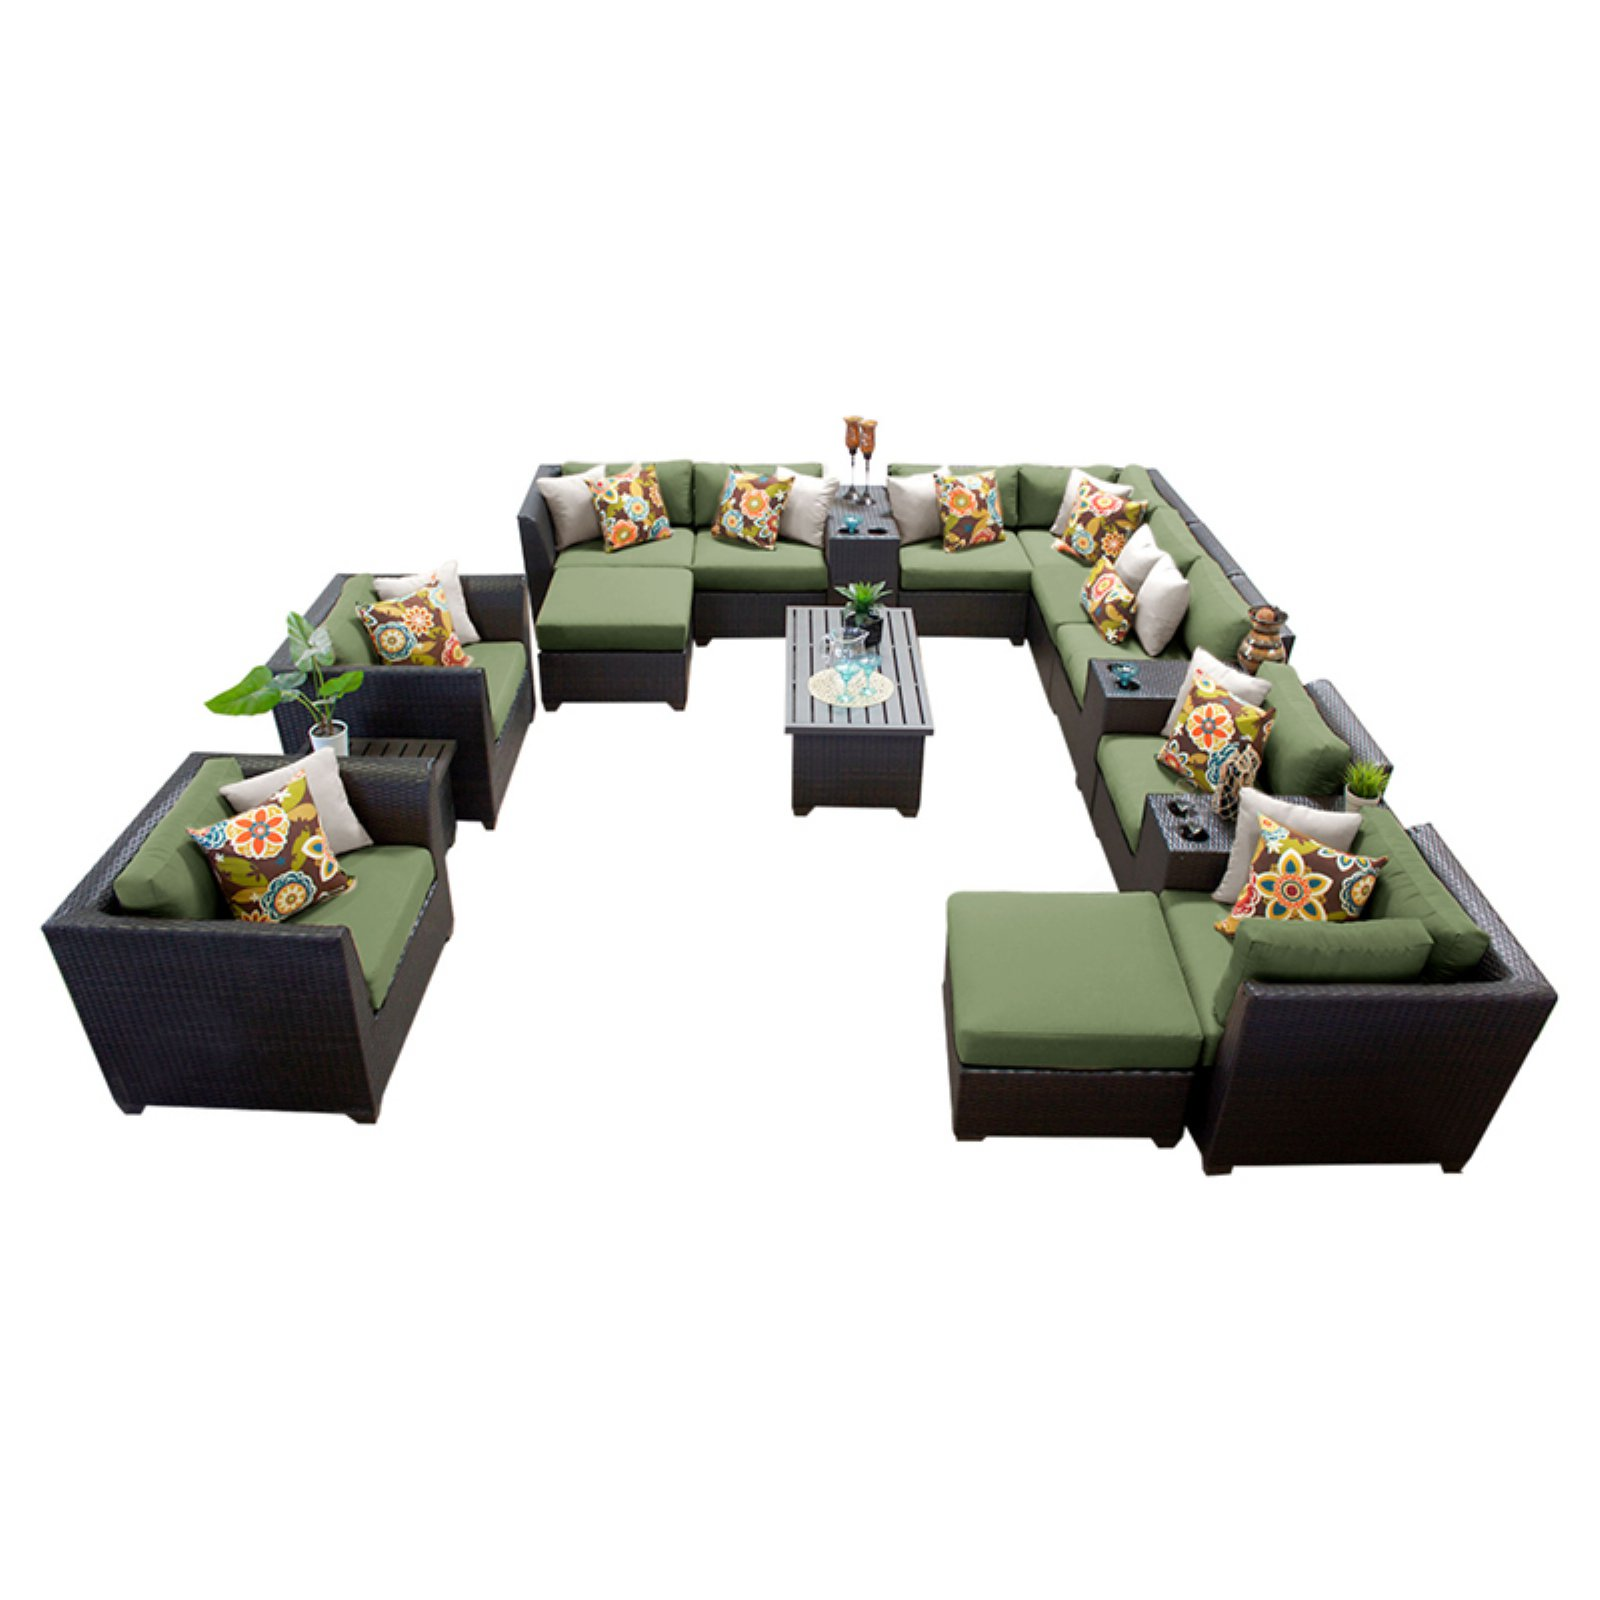 TK Classics Barbados Wicker 17 Piece Patio Conversation Set with Ottoman with 2 Sets of Cushion Covers